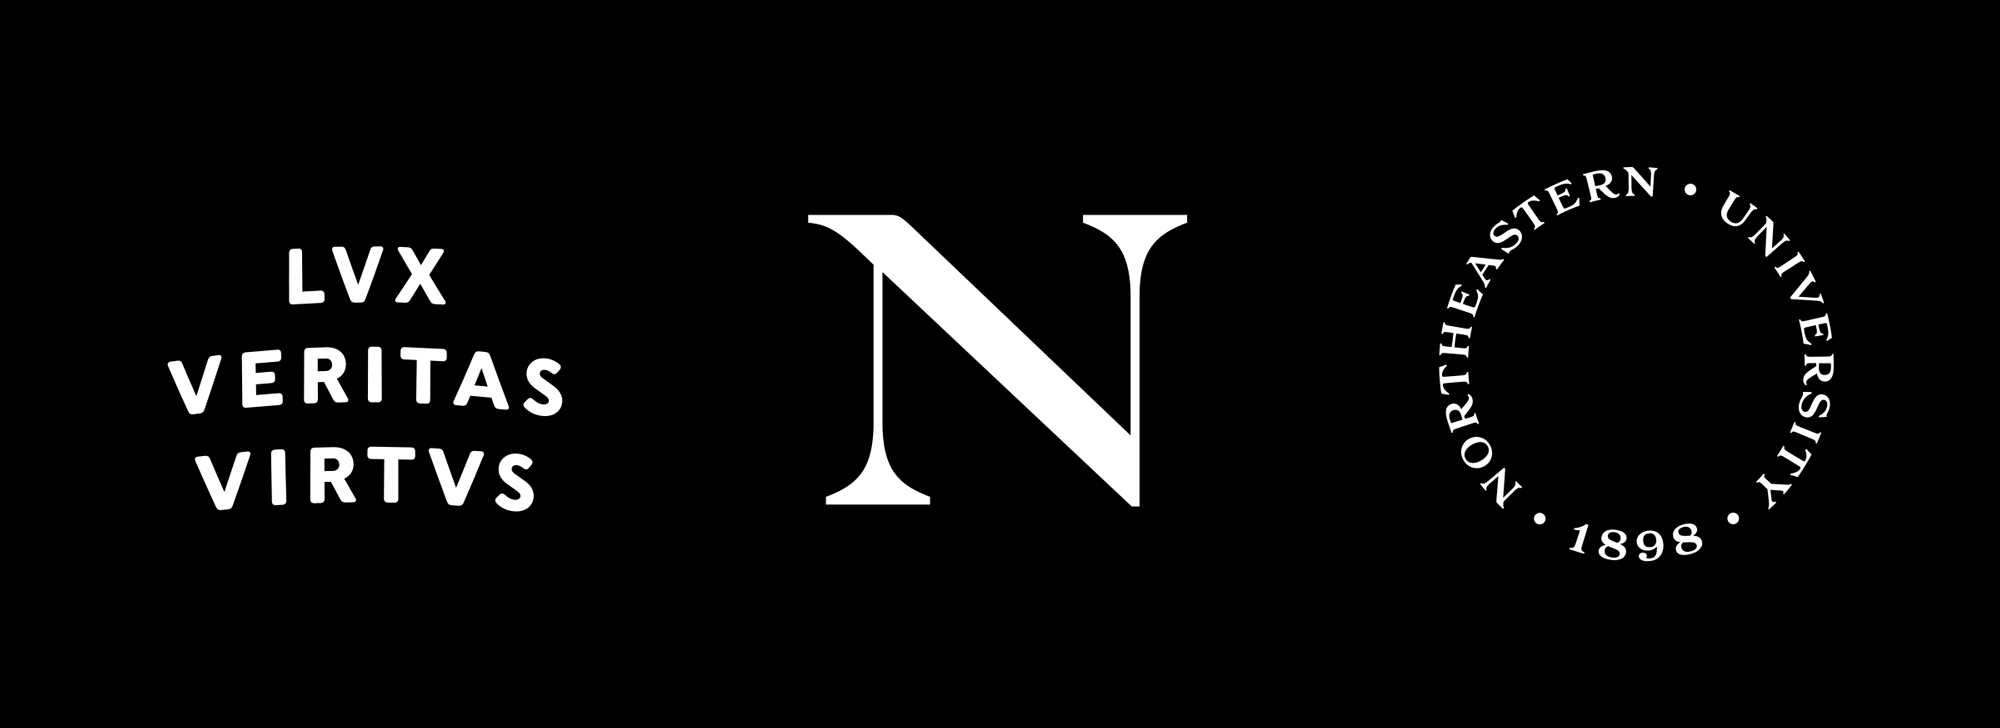 New Logo and Identity for Northeastern University by Upstatement